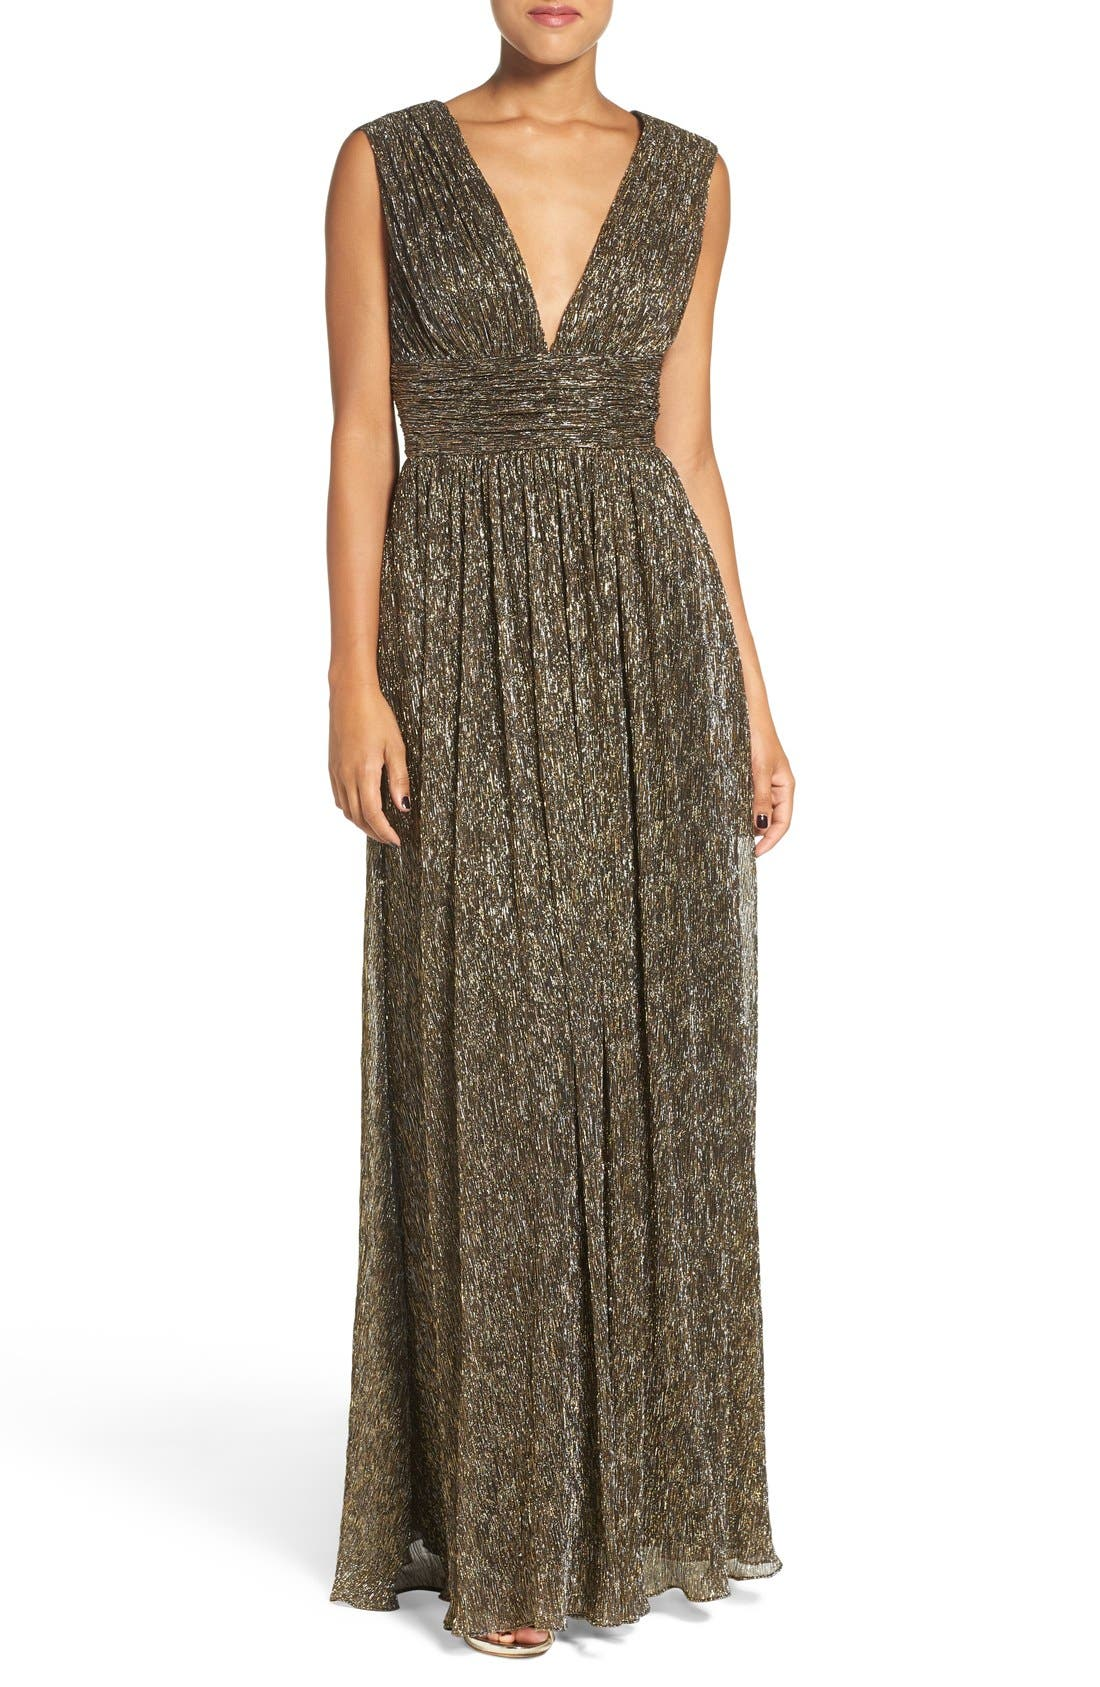 Alternate Image 1 Selected - Aidan by Aidan Mattox Crinkle Metallic Fit & Flare Gown